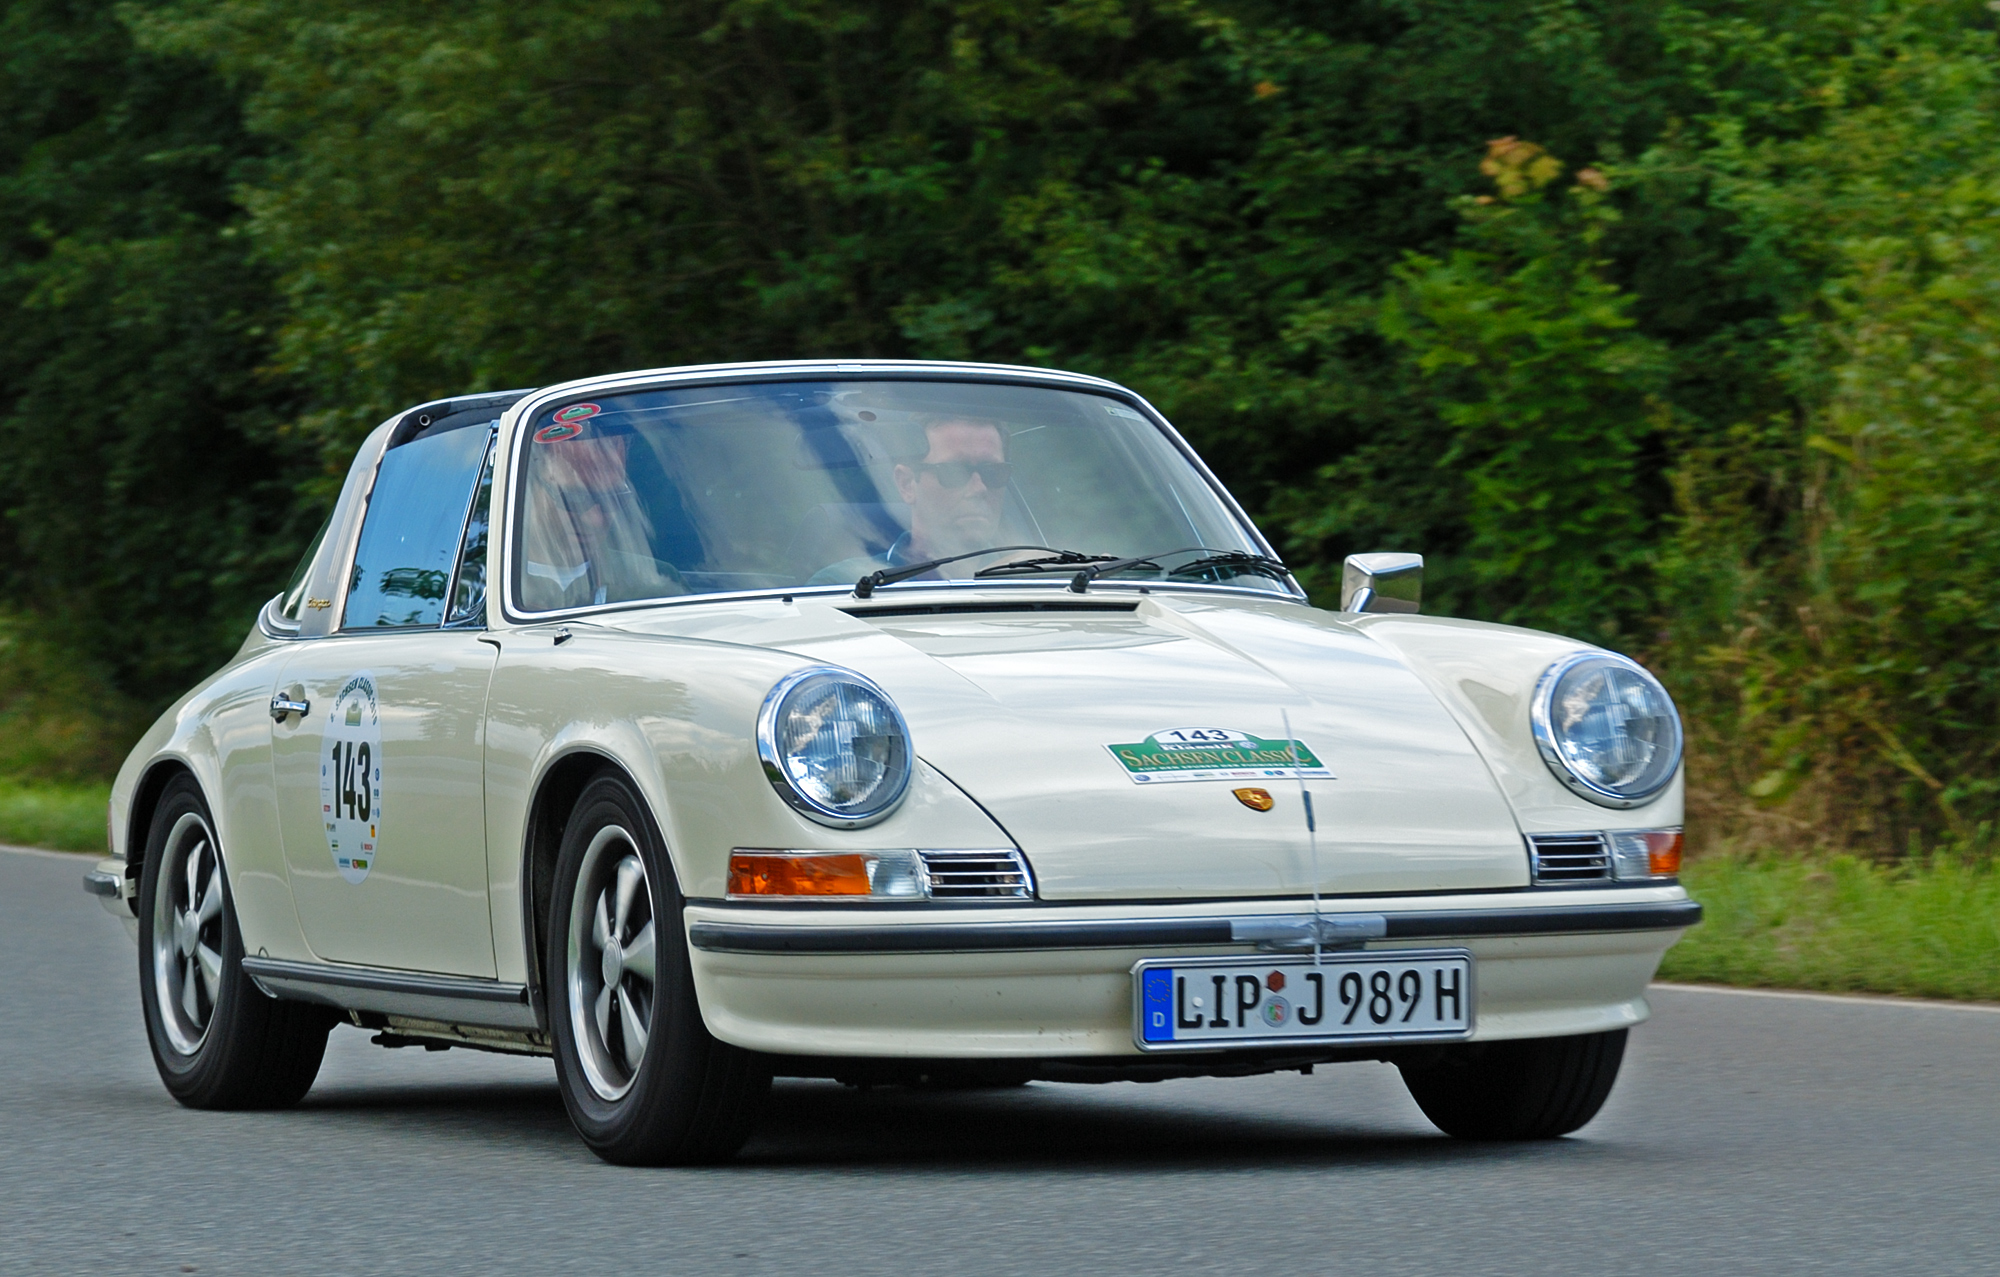 Best Affordable Classic Cars To Buy